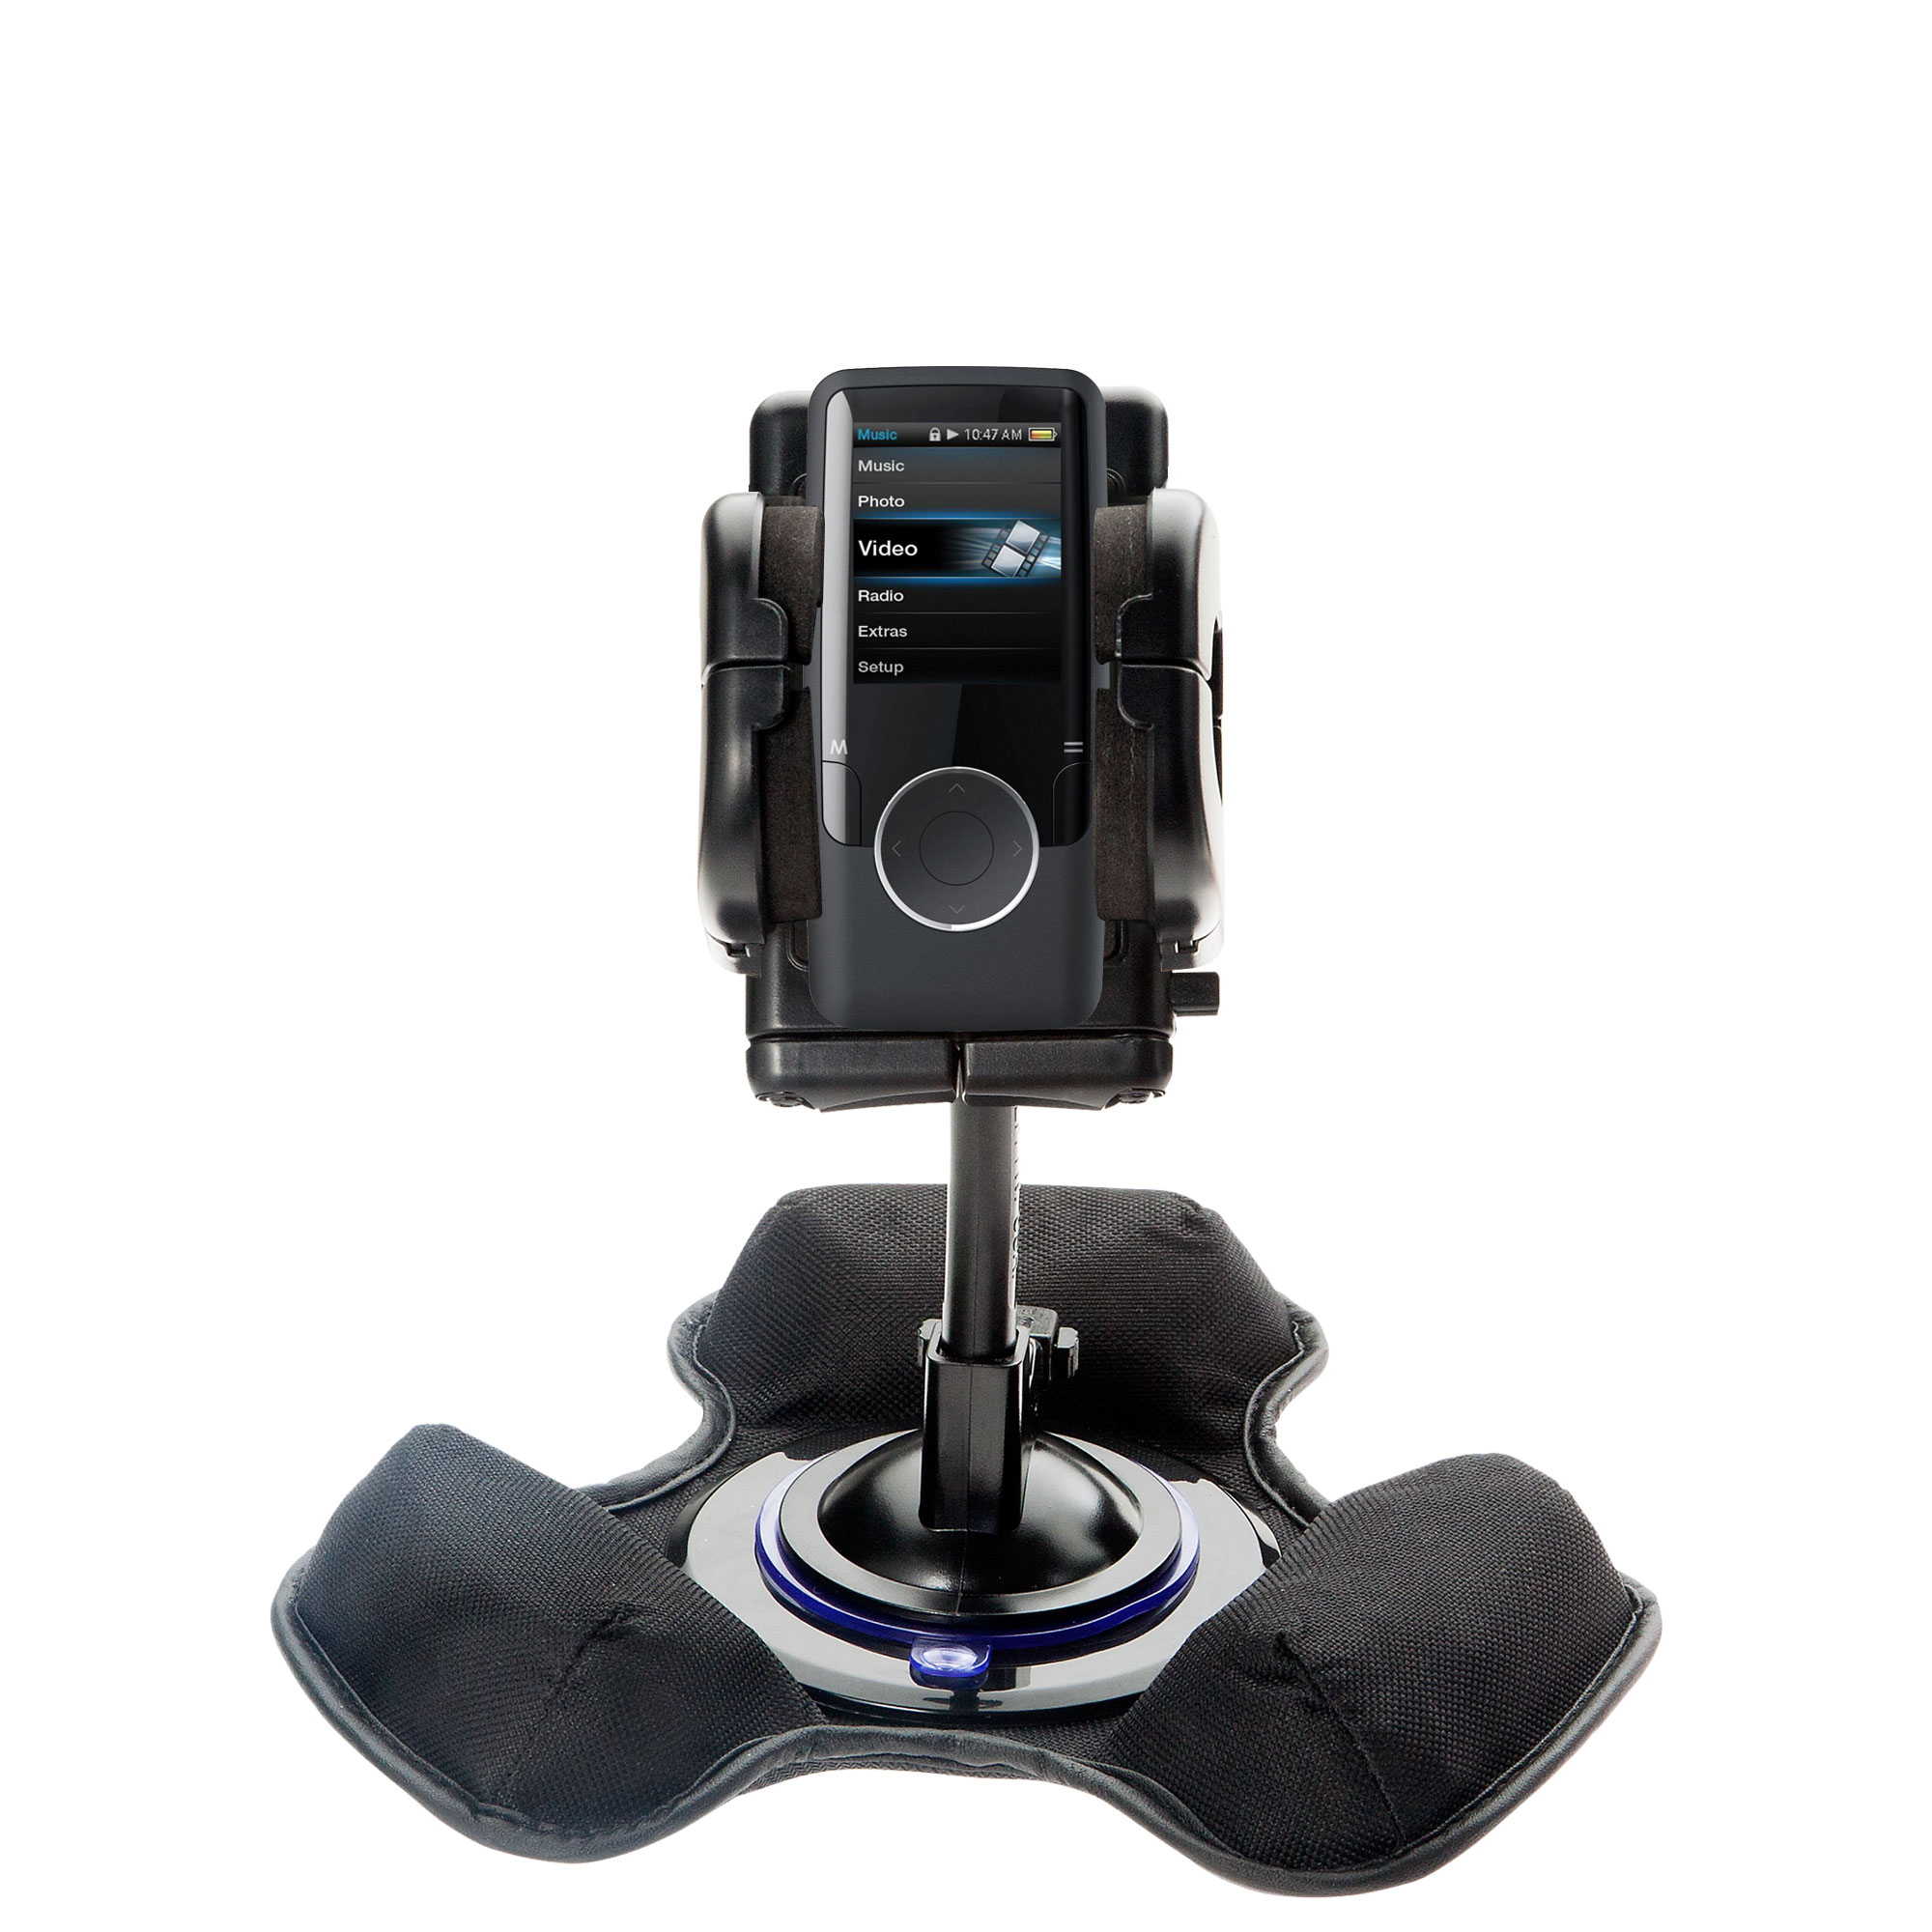 Car / Truck Vehicle Holder Mounting System for Coby MP620 Video MP3 Player Includes Unique Flexible Windshield Suction and Universal Dashboard Mount Options